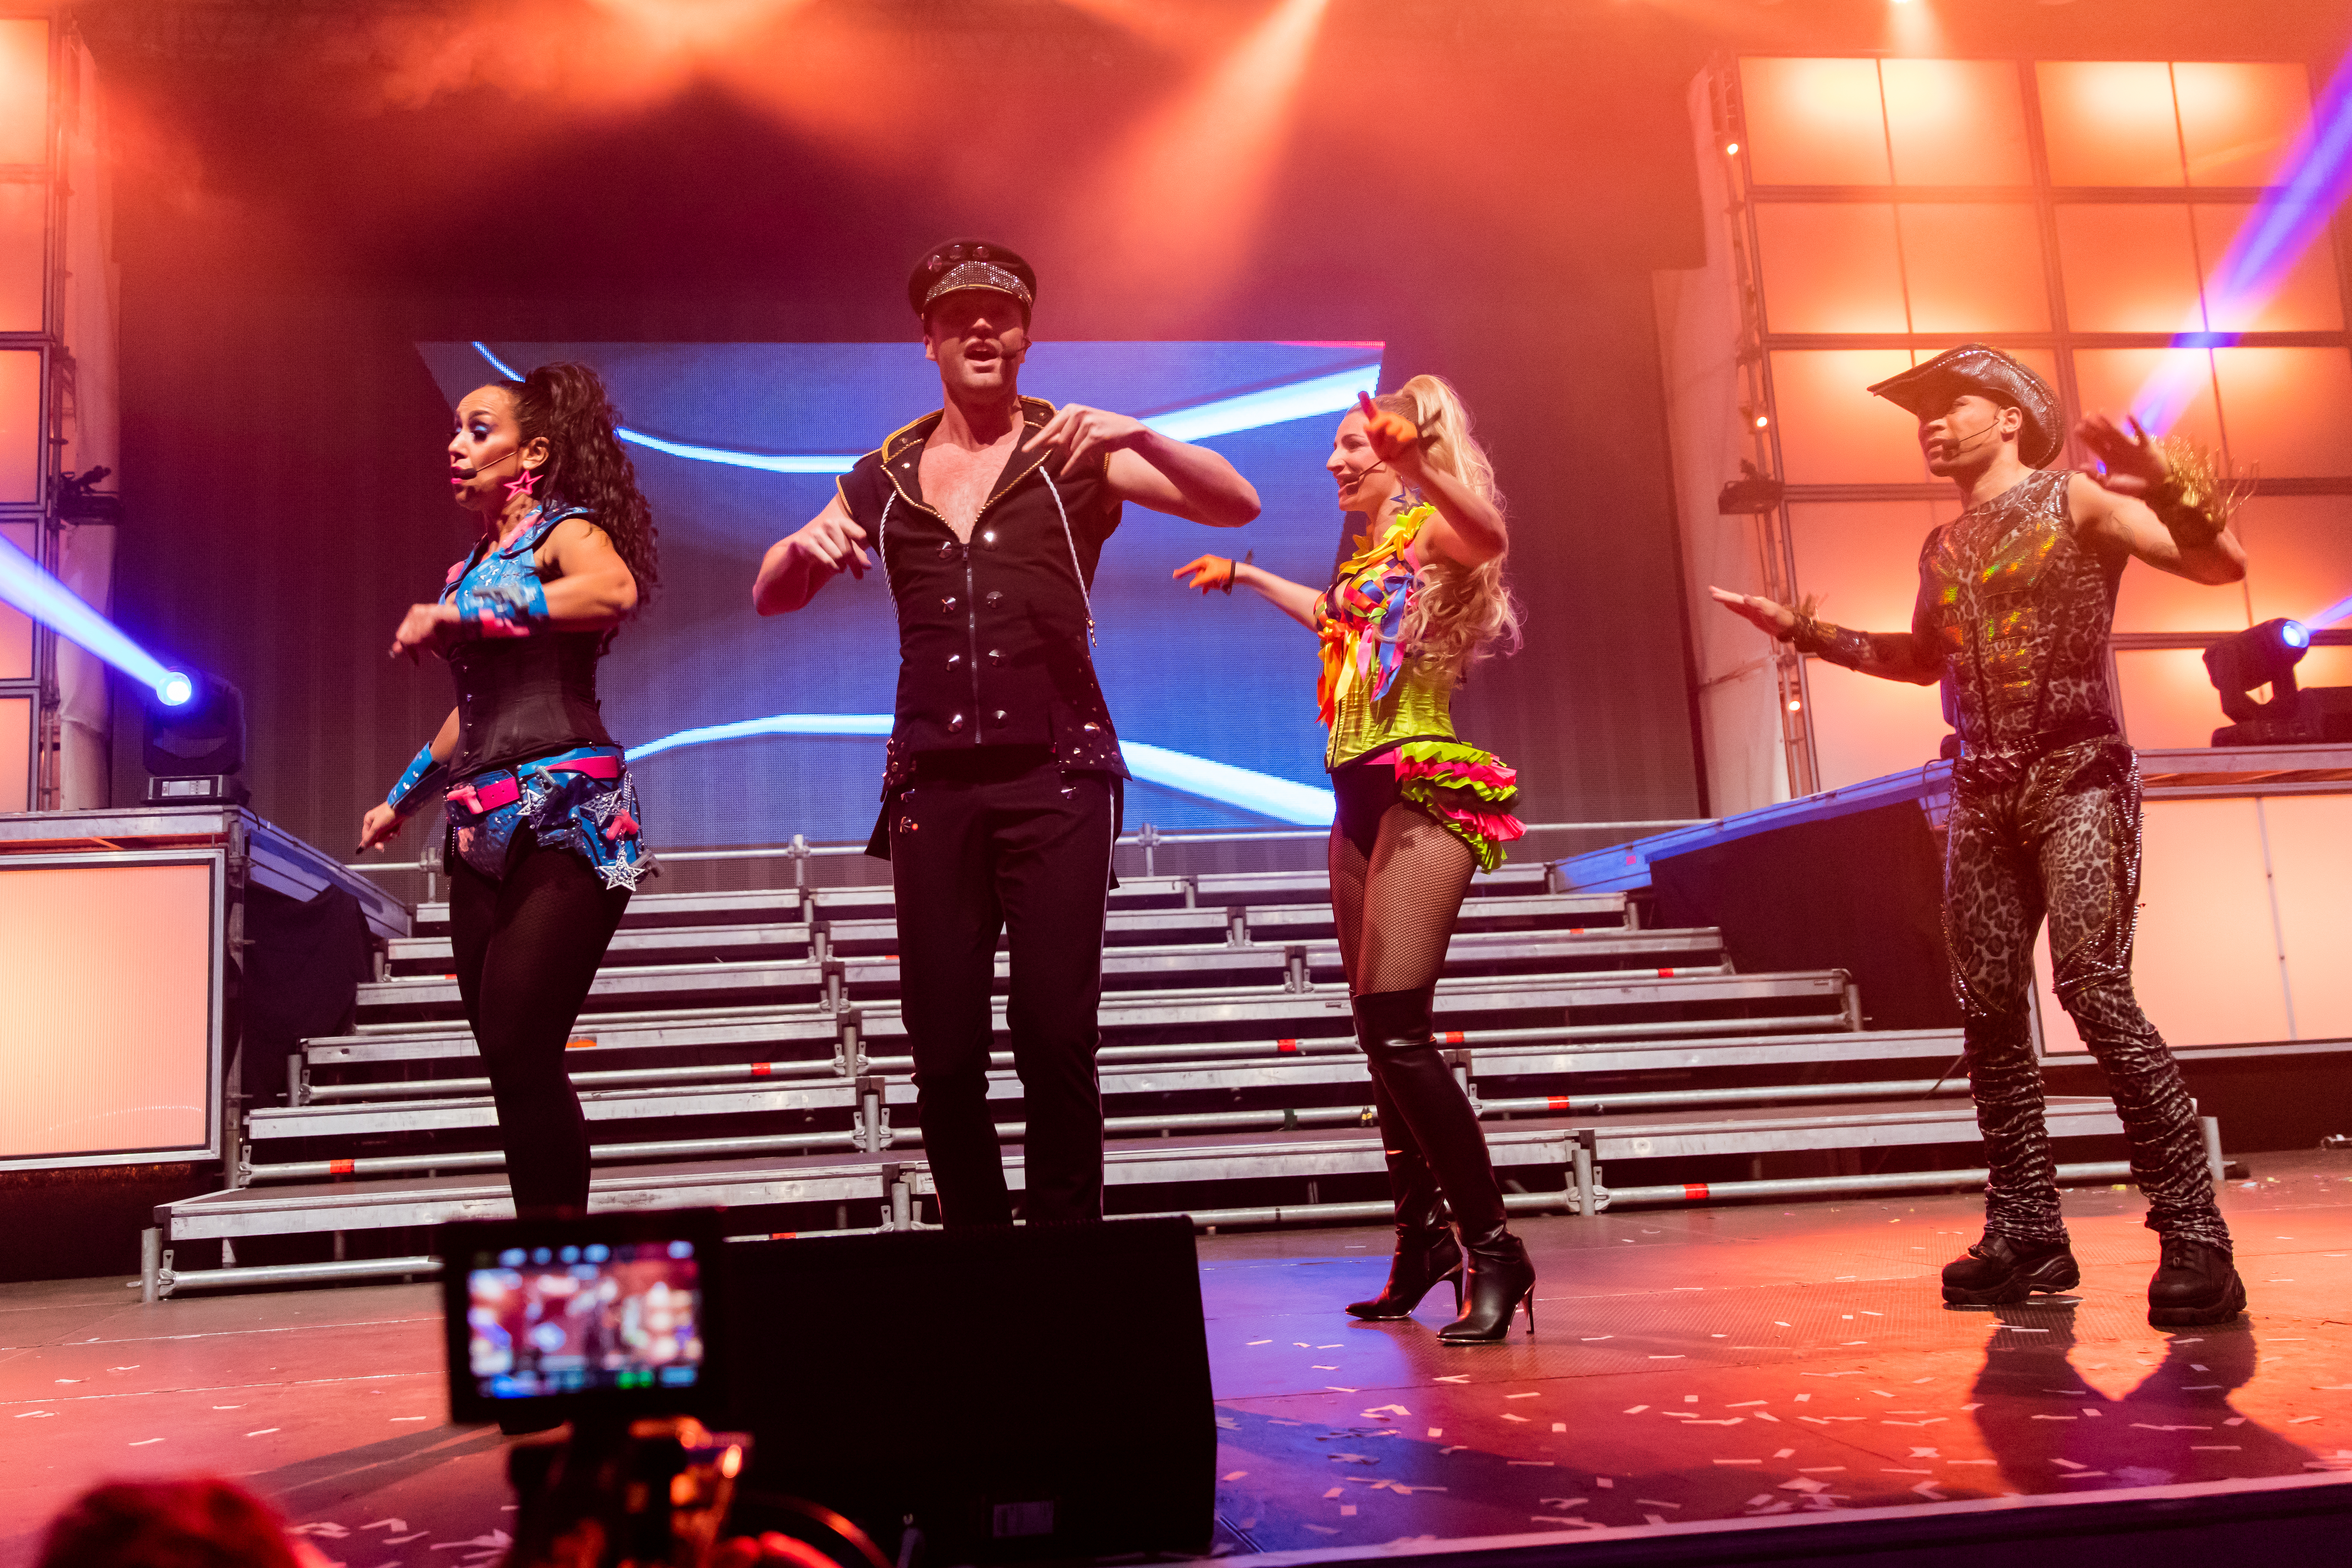 "2015-11-28 Sunshine Live - Die 90er Live on Stage - Sven - 5DS R - 0501 - 5DSR3618 mod.jpg Vengaboys during sunshine live ""Die 90er - Live on Stage"" at Maimarkt"